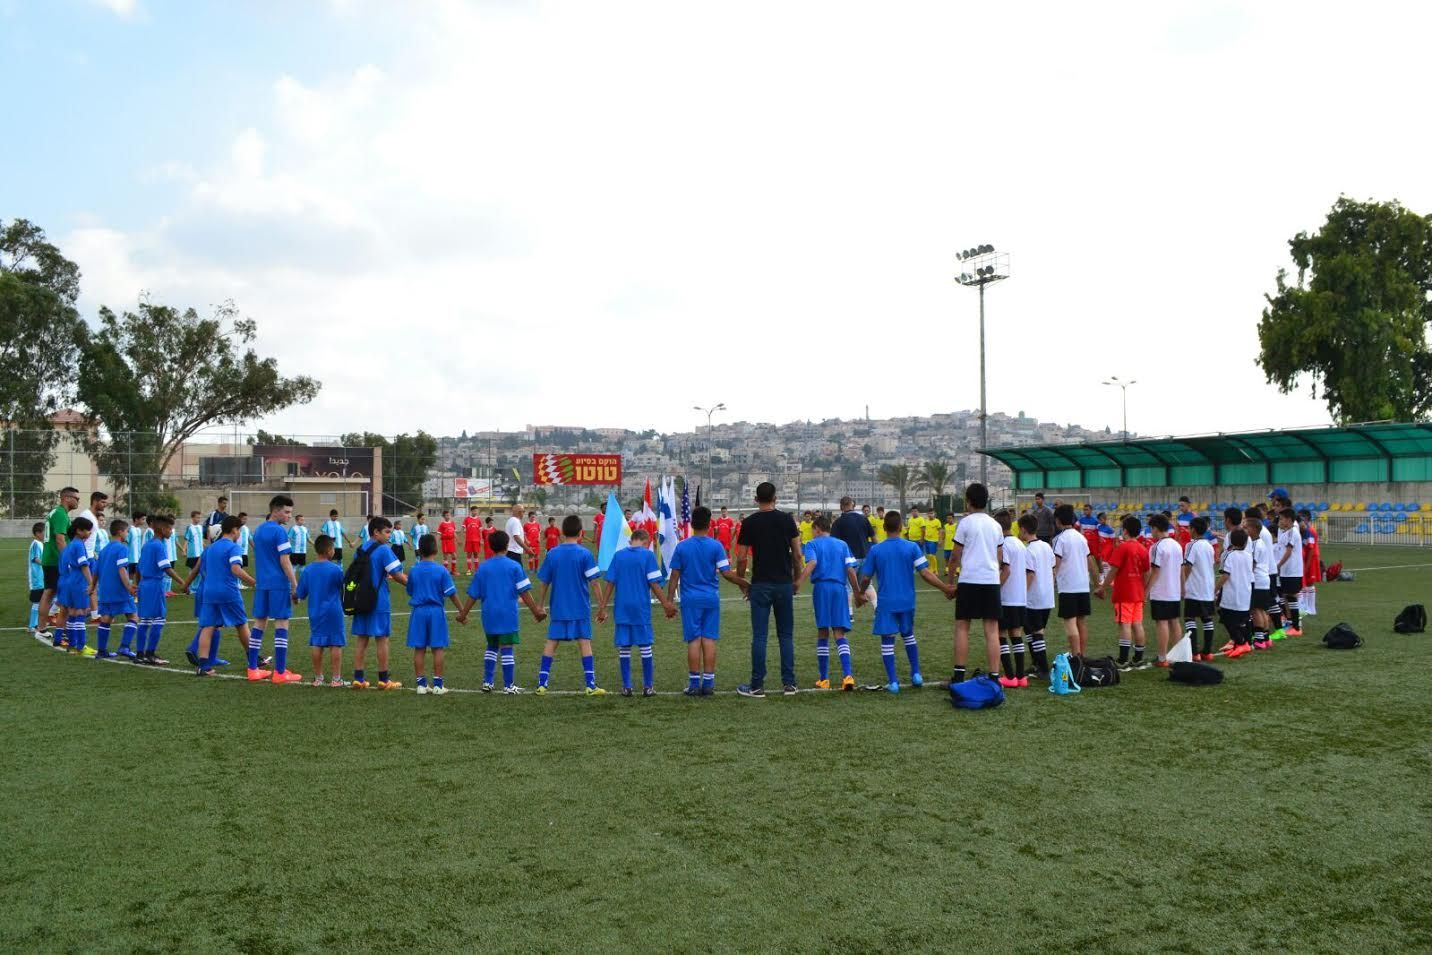 Jewish and Arab children take part in the Soccer for Peace summer camp run in conjunction with Givat Haviva